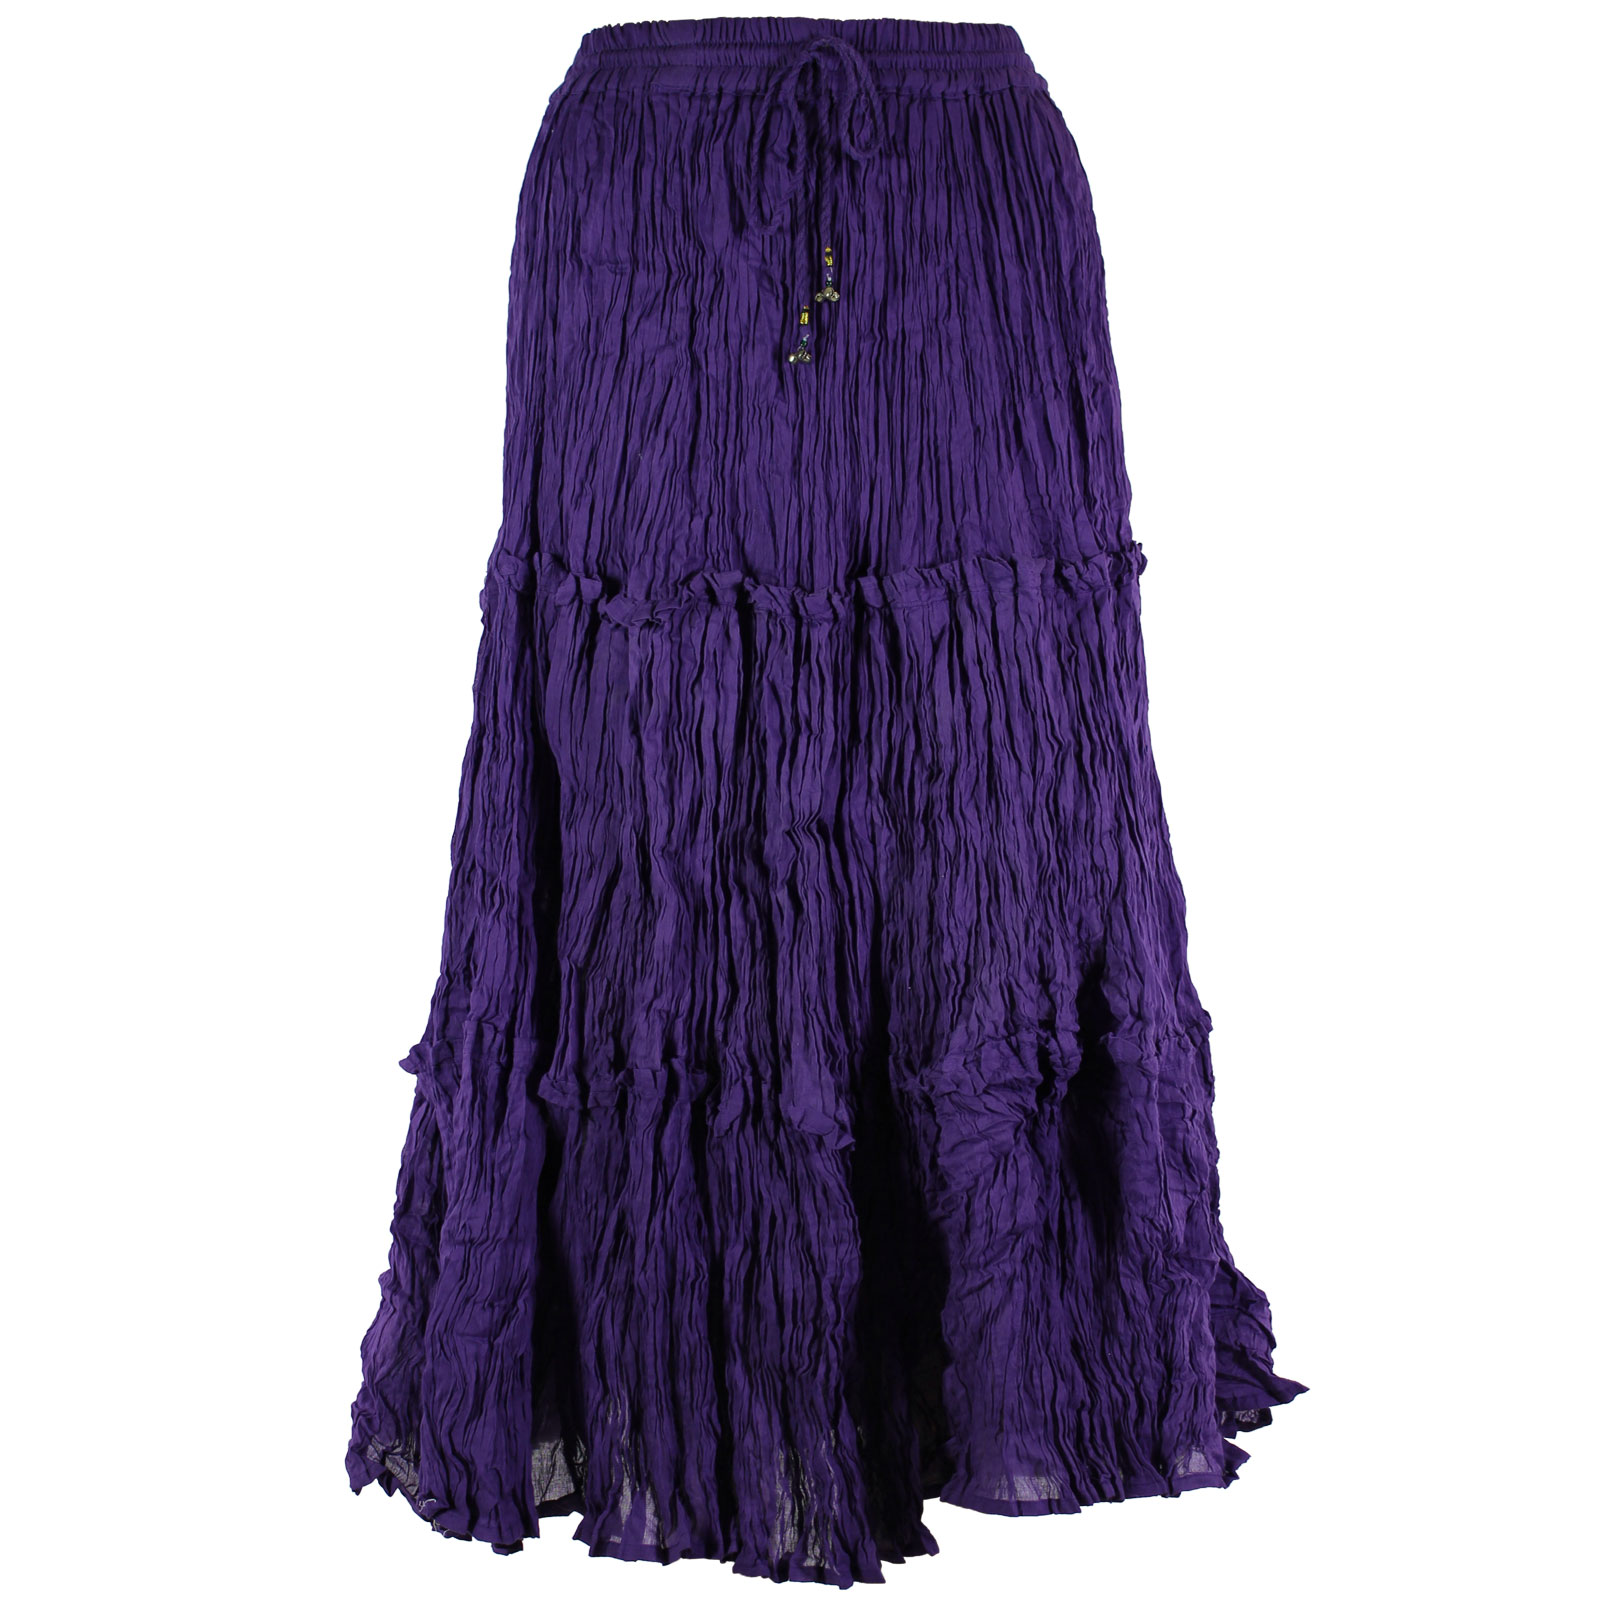 Wholesale Skirts - Cotton Three Tier Broomstick 500 & 529 Ankle Length - Purple - One Size (S-XL)